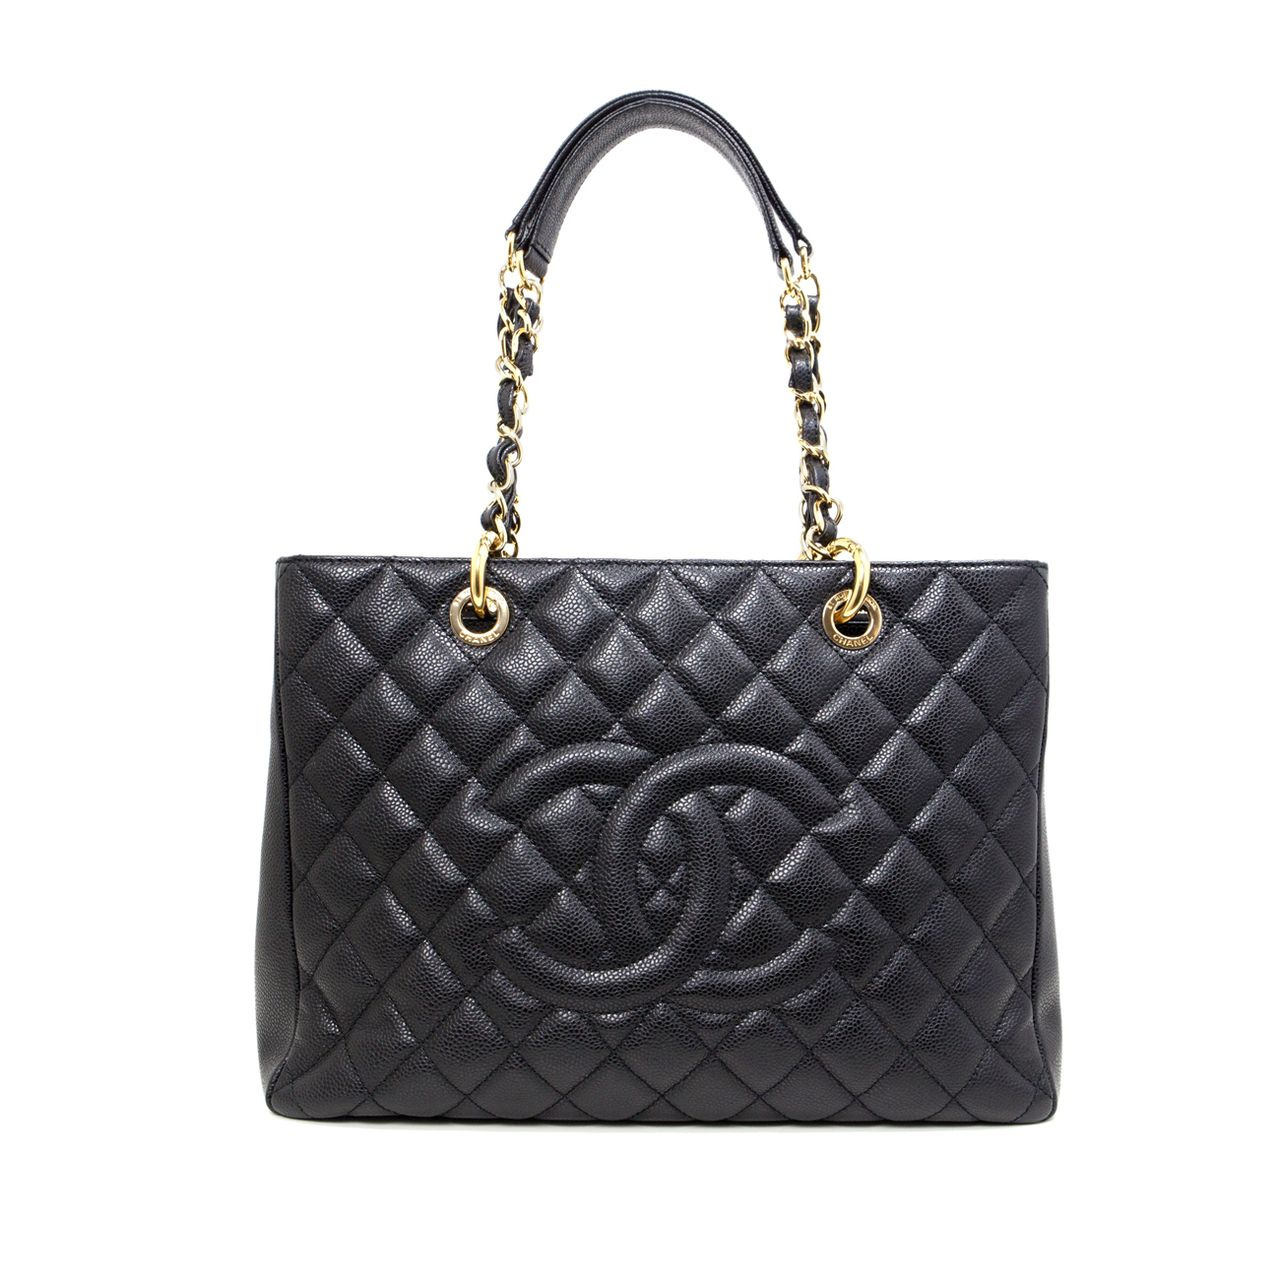 2cd8b4ff2778 Chanel Black Caviar GST Grand Shopping Tote - modaselle | Chanel ...